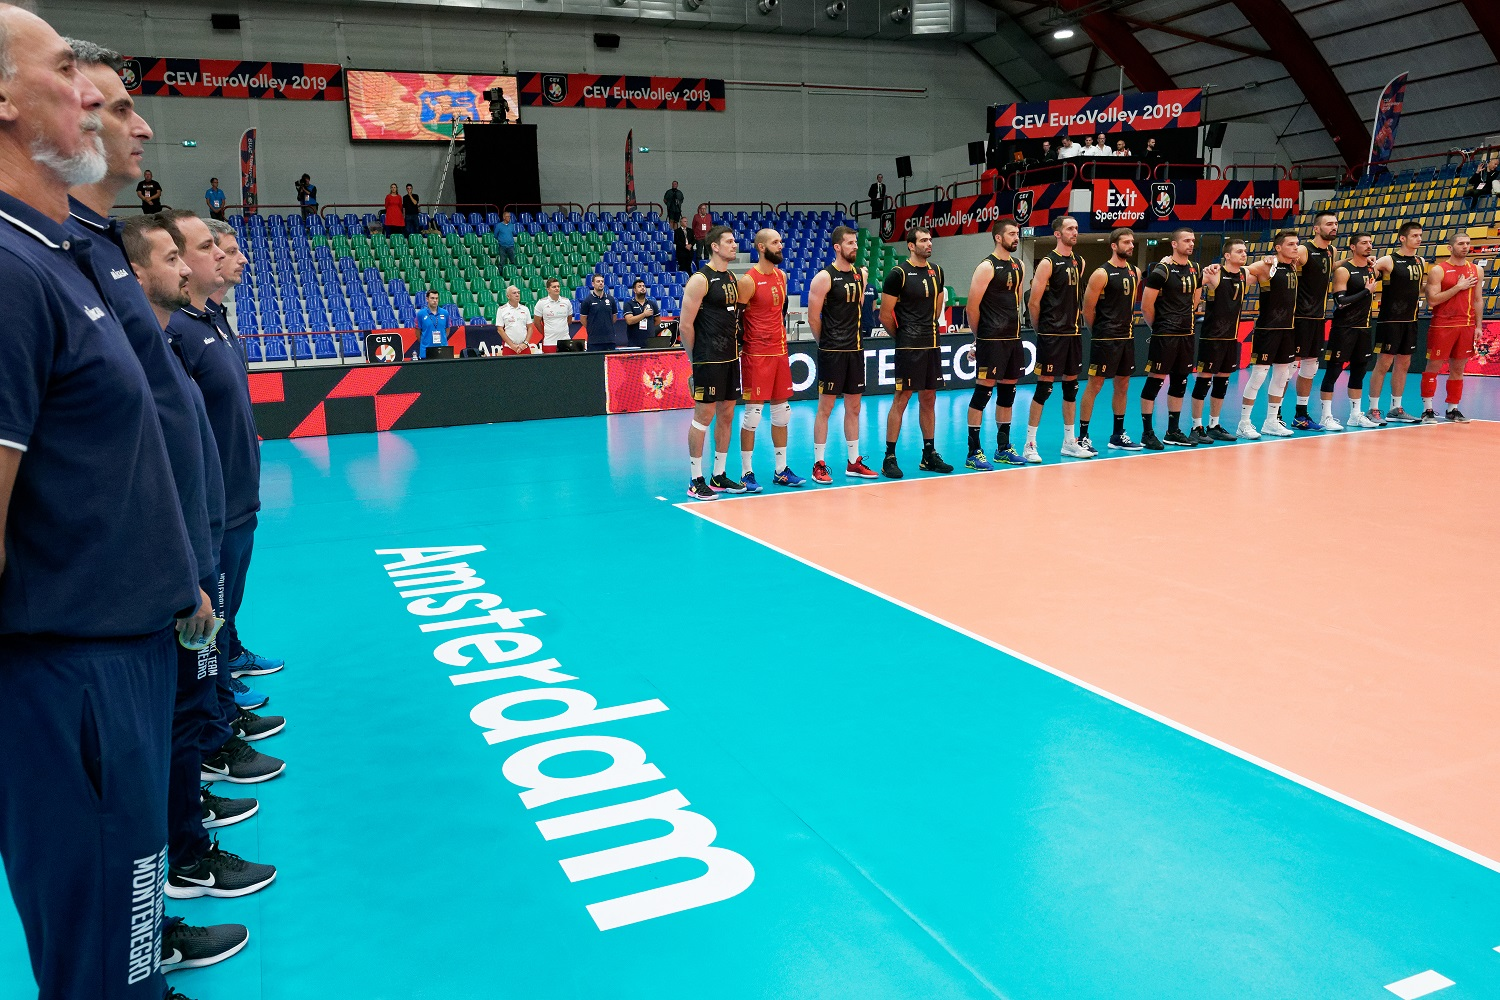 Ned, EC Volleyball 2019 Montenegro – Poland, Amsterdam